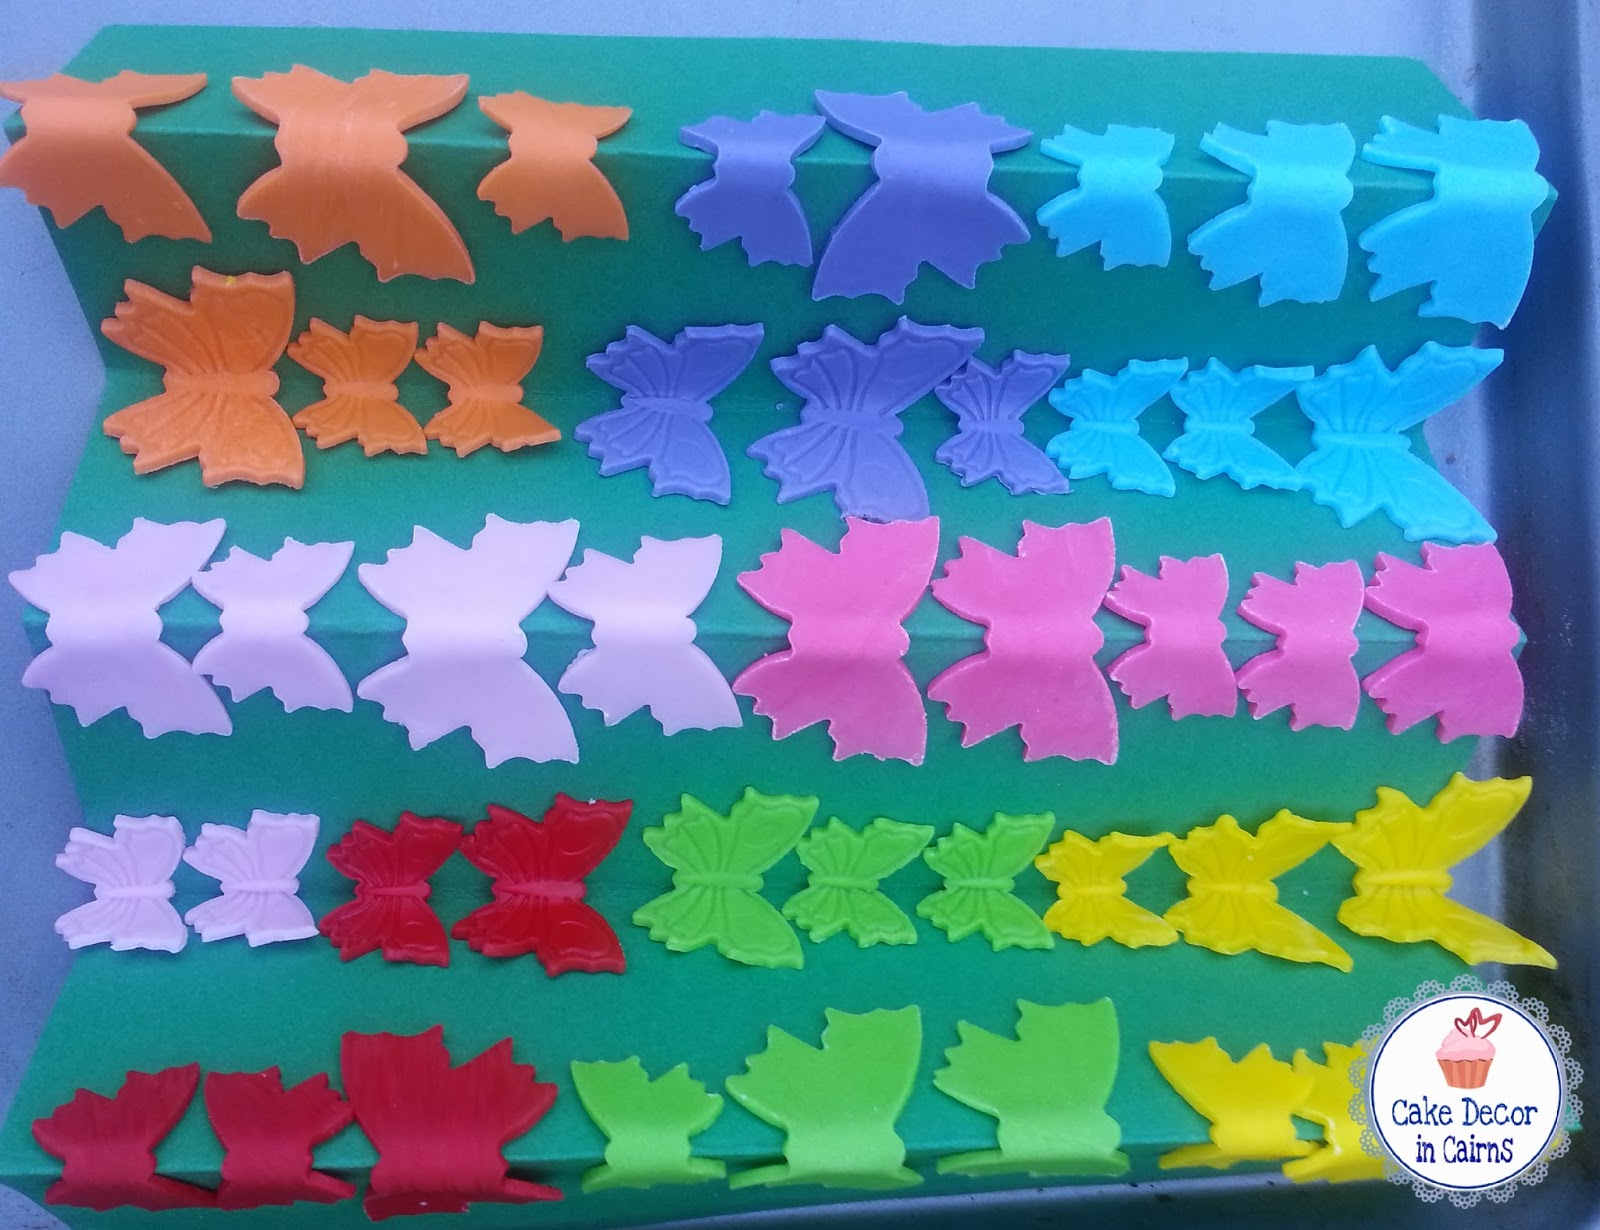 Making a  diy former to dry fondant gumpaste butterflies Rainbow Coloured drying